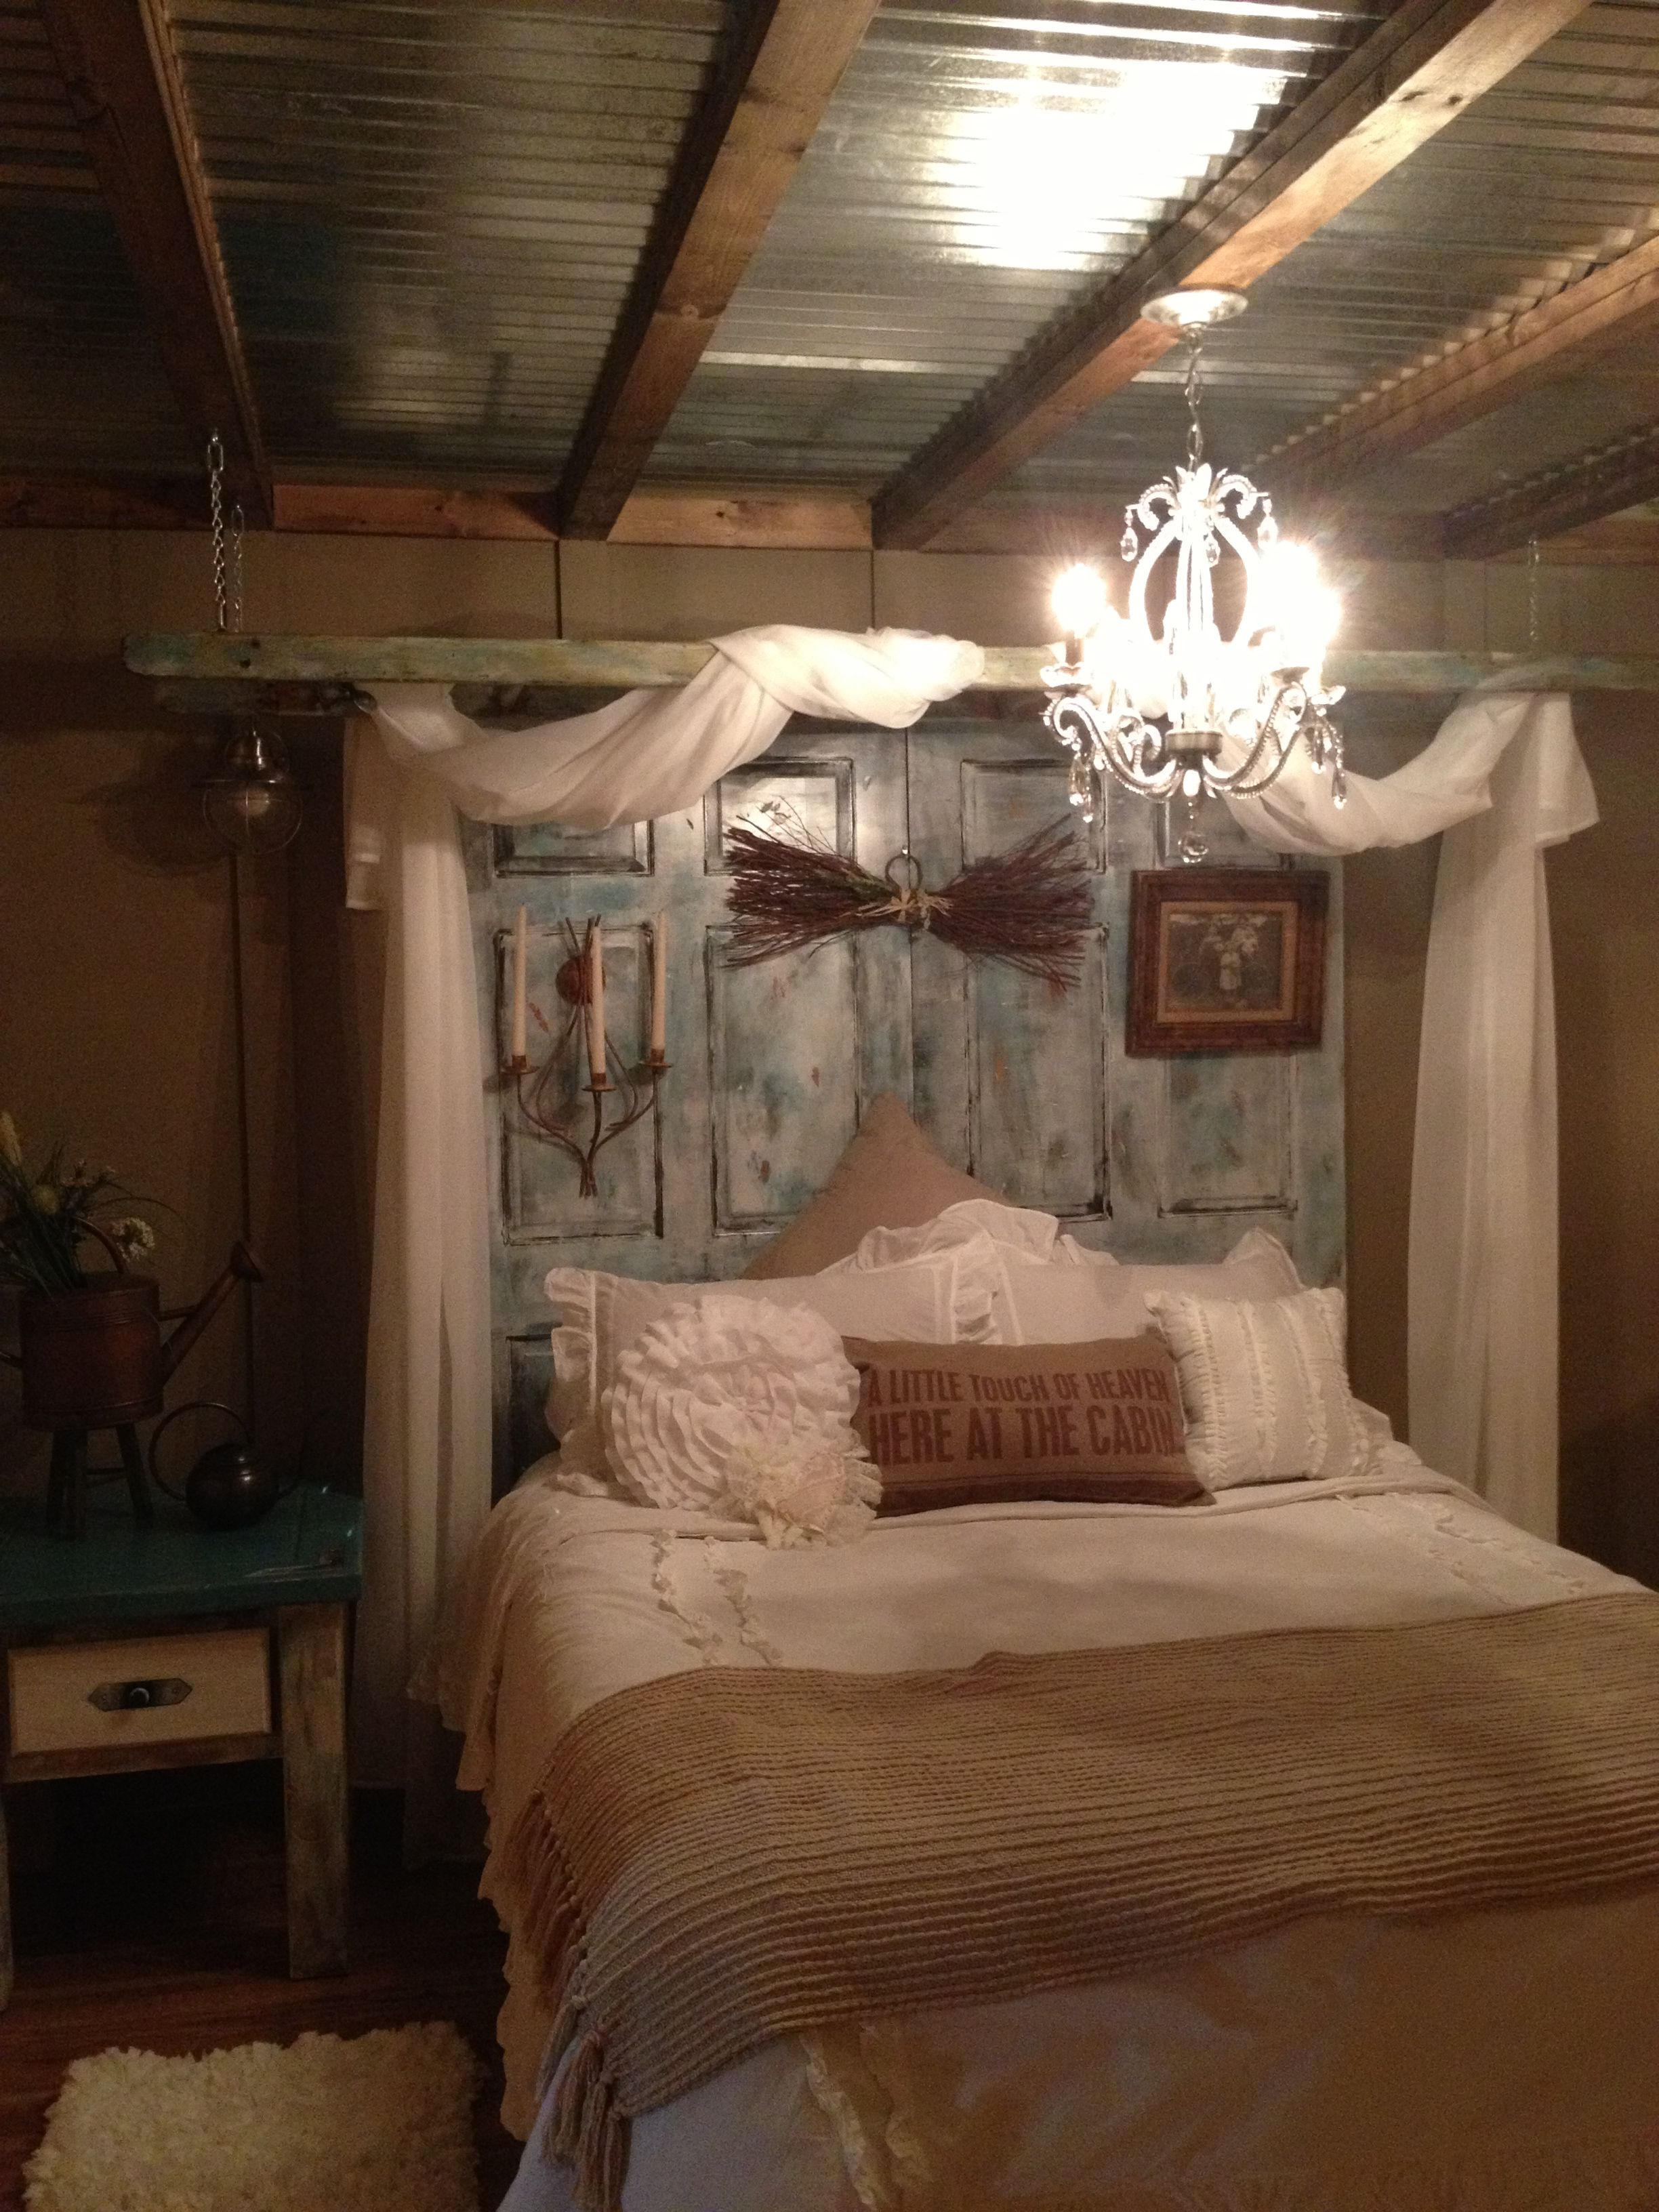 Bedroom ceiling drapes - Used Old Ladder For Curtains And Painted Old Doors For Headboard Tin Ceiling Drapes Rustic Looking Bedroom